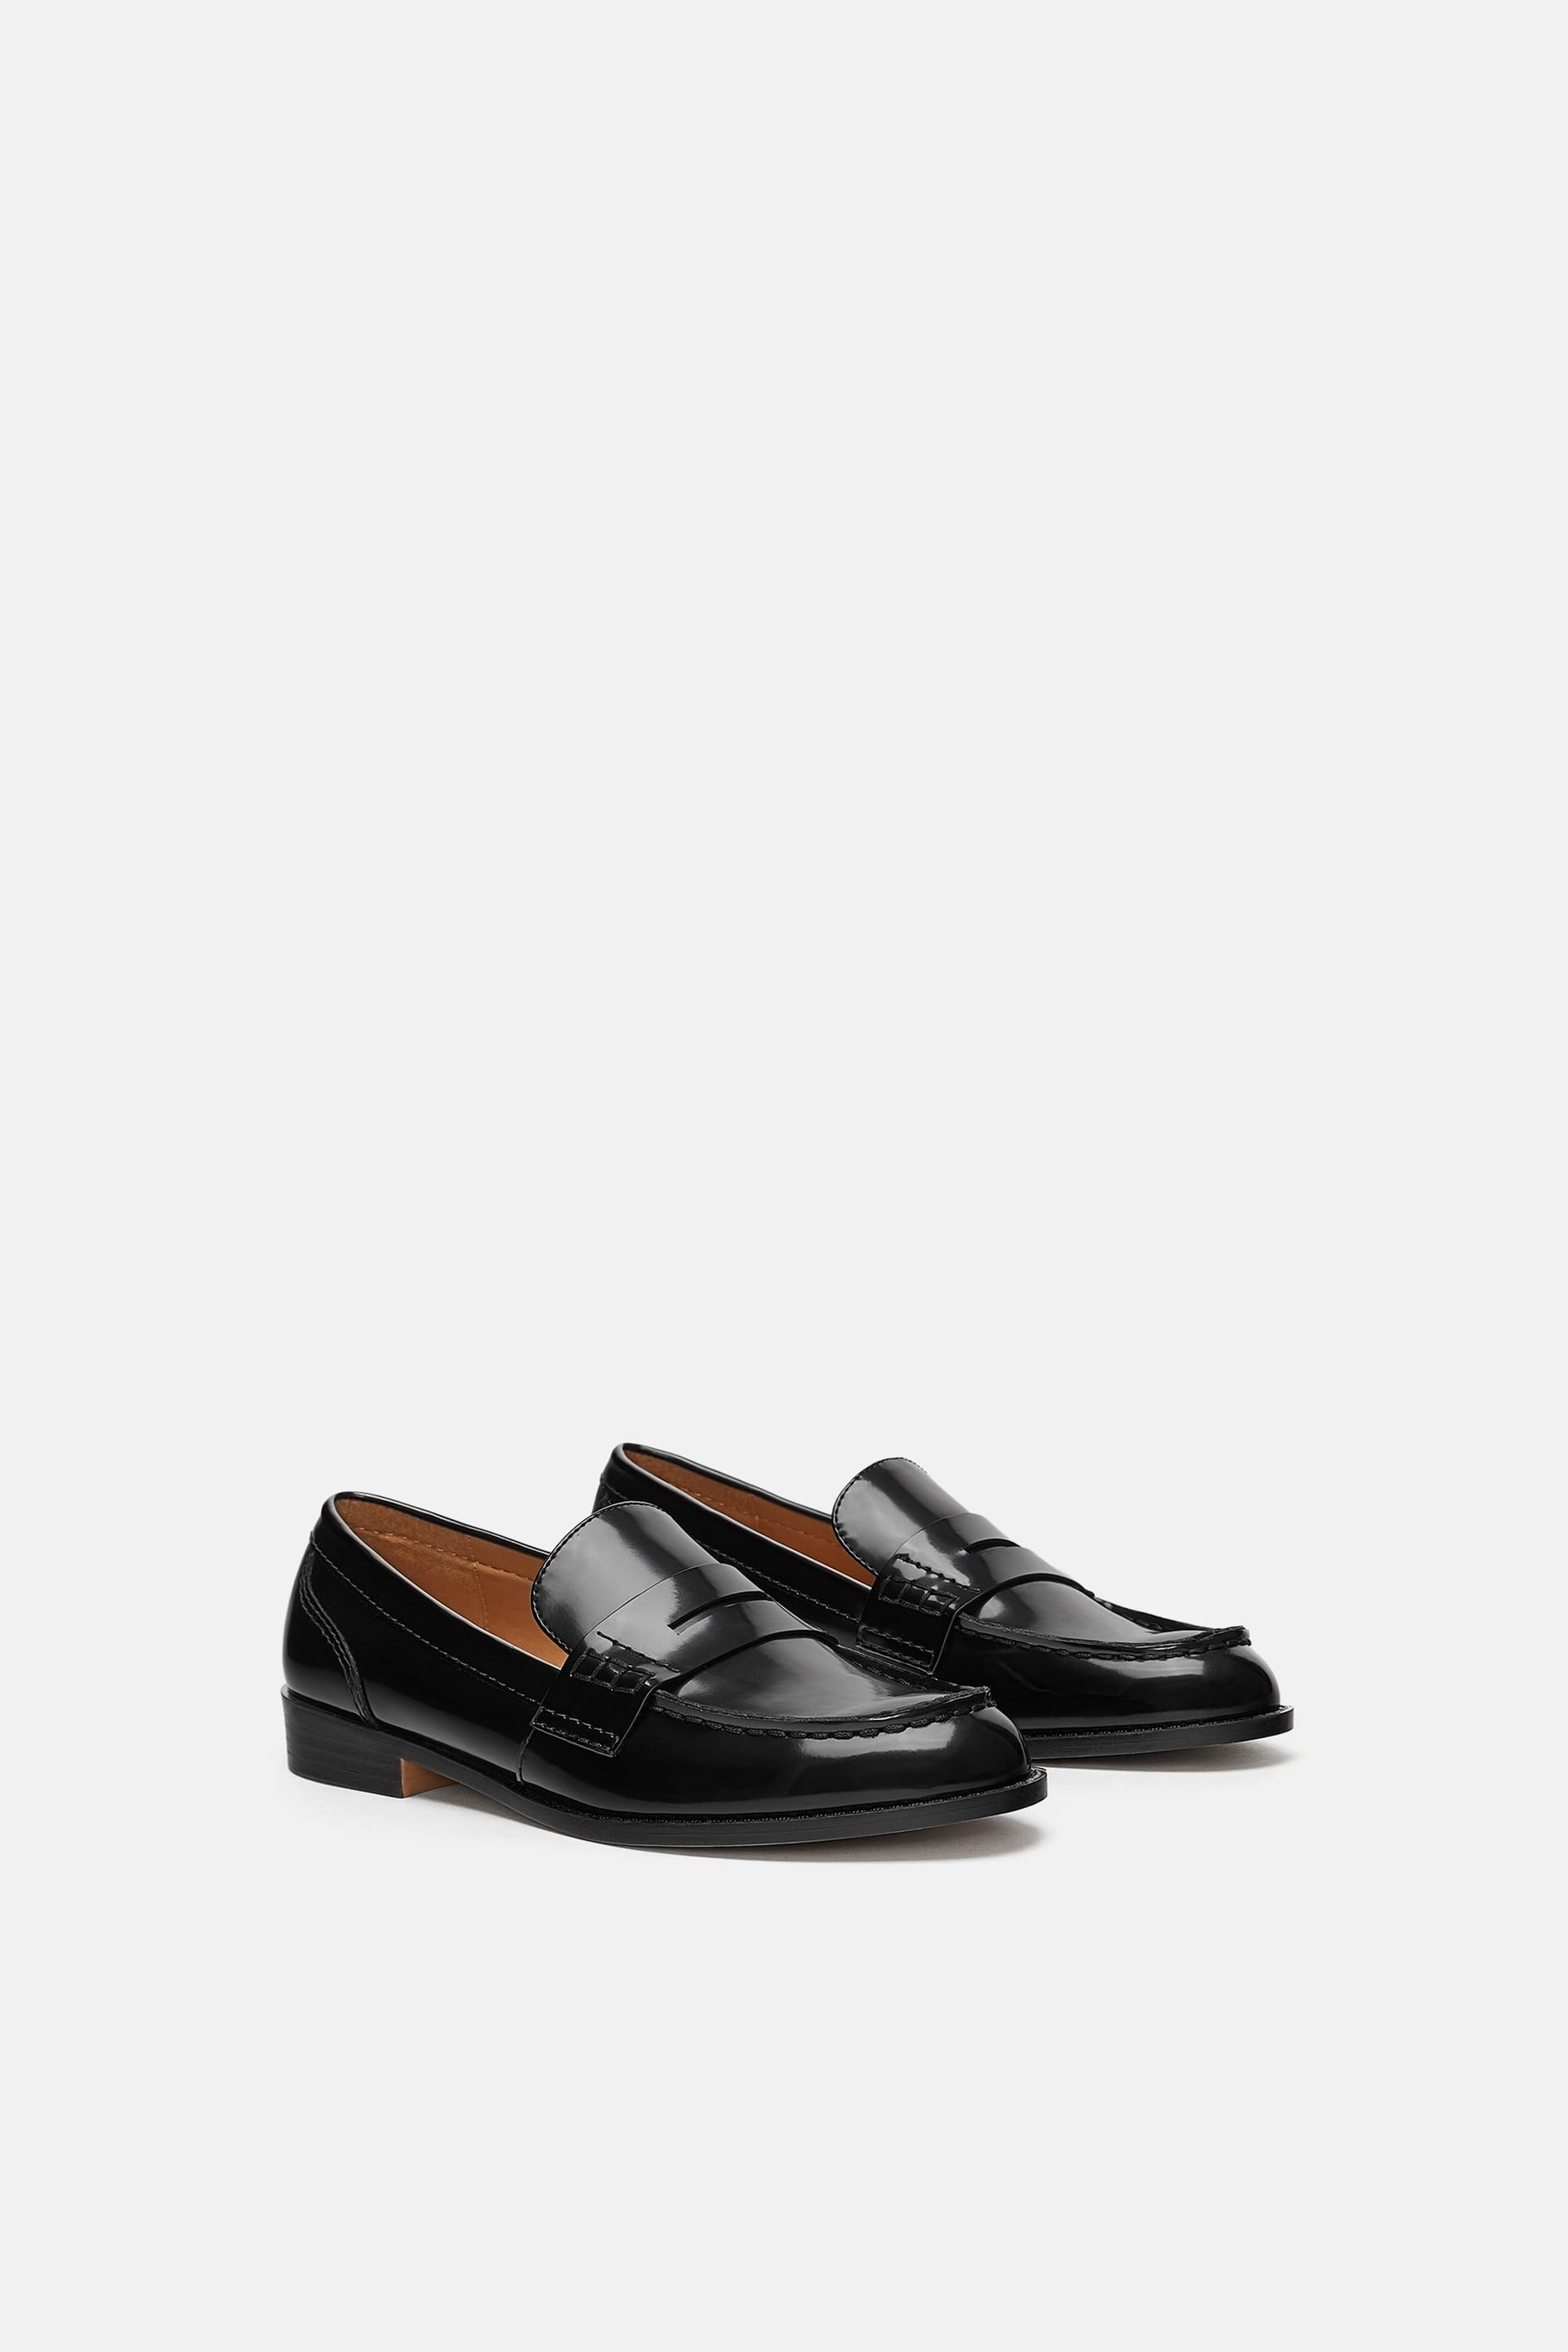 6b4ff95a966 ZARA - WOMAN - LOAFERS